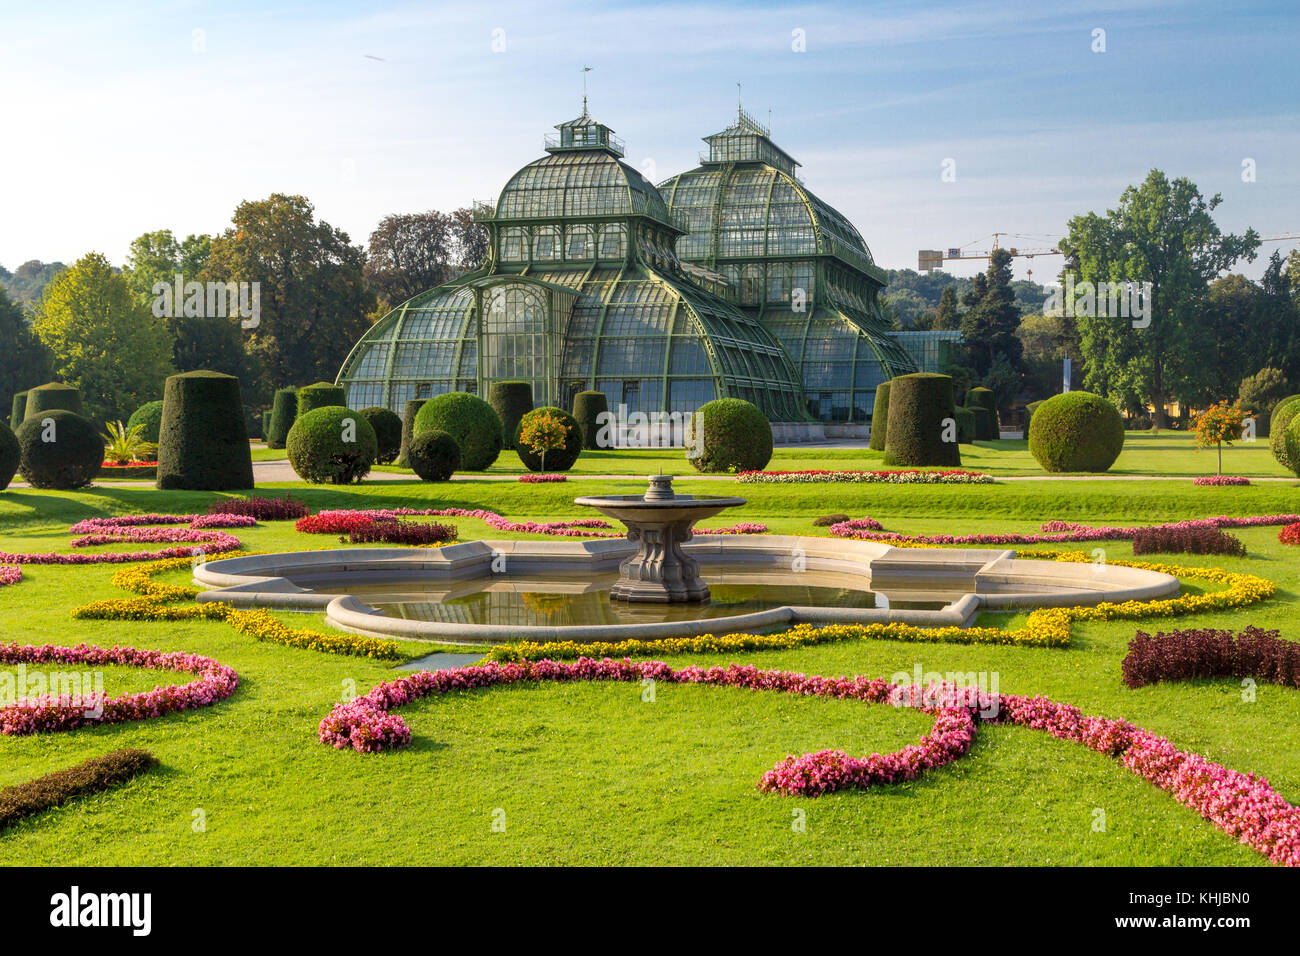 VIENNA, AUSTRIA - SEPTEMBER 11, 2016 : View of Palm House in Schönbrunn Palace Garden in Vienna, on bright - Stock Image